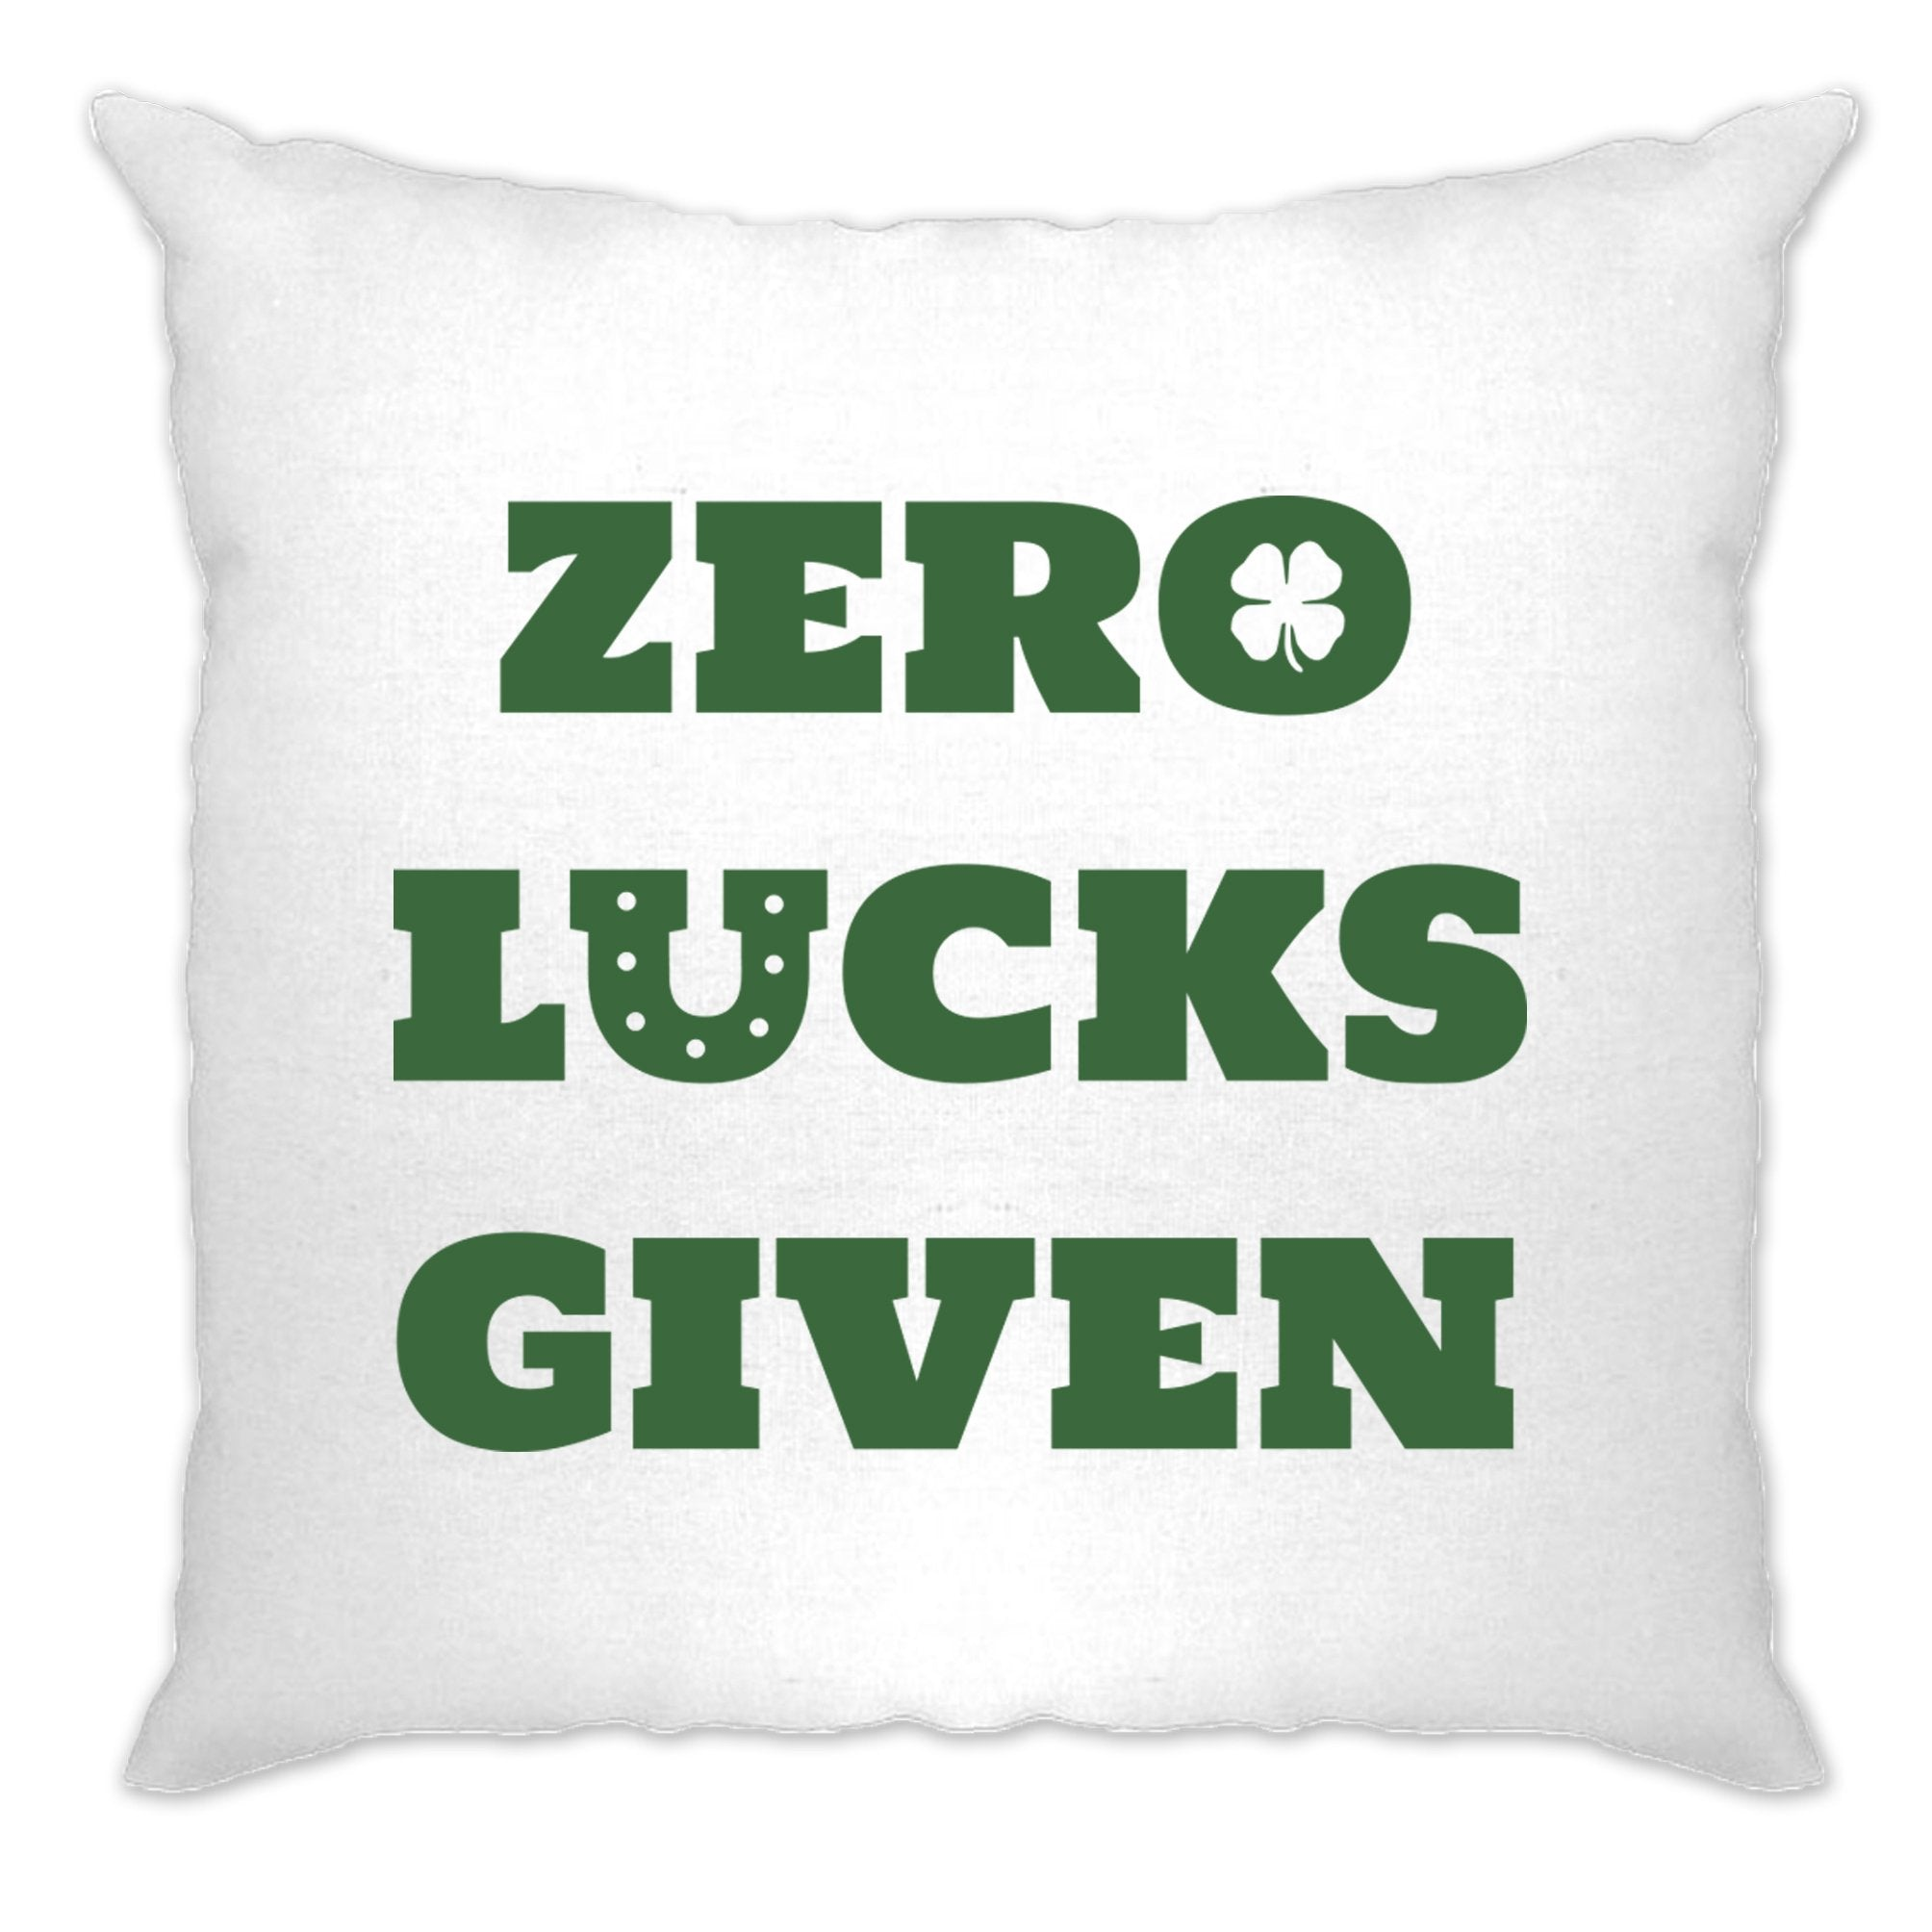 St. Patricks Cushion Cover No Lucks Given Slogan